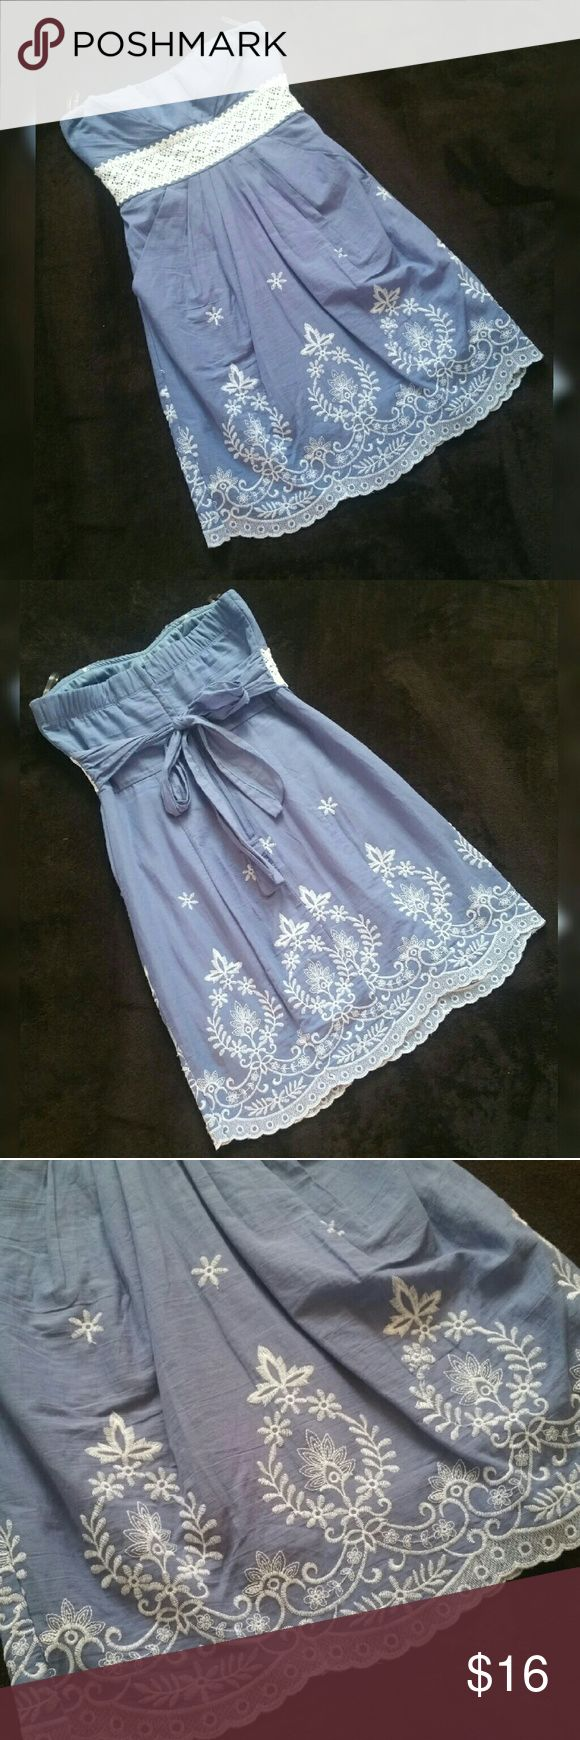 Strapless Sundress Beautiful light baby blue and white lace / crochet strapless embroidered sun dress Ties in back Padded bust Size 5 Very cute, could be worn with wedges, sandals, or cowboy / cowgirl boots for more of a country western look Made by Speechless Speechless Dresses Strapless